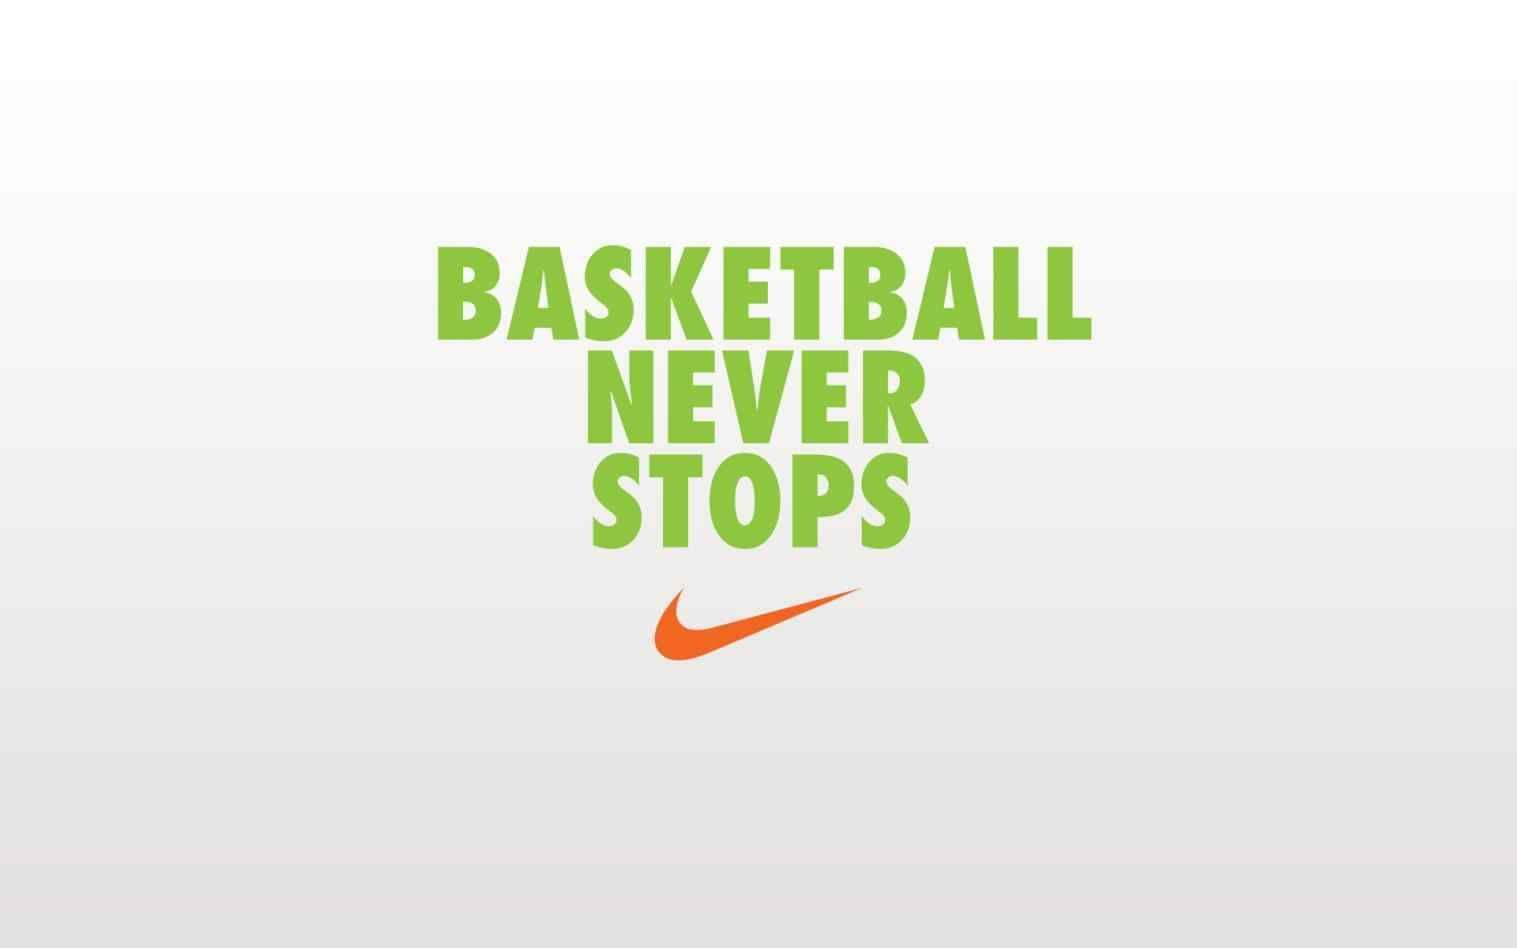 Basketball Never Stops Wallpapers Hd ✓ Best HD Wallpapers